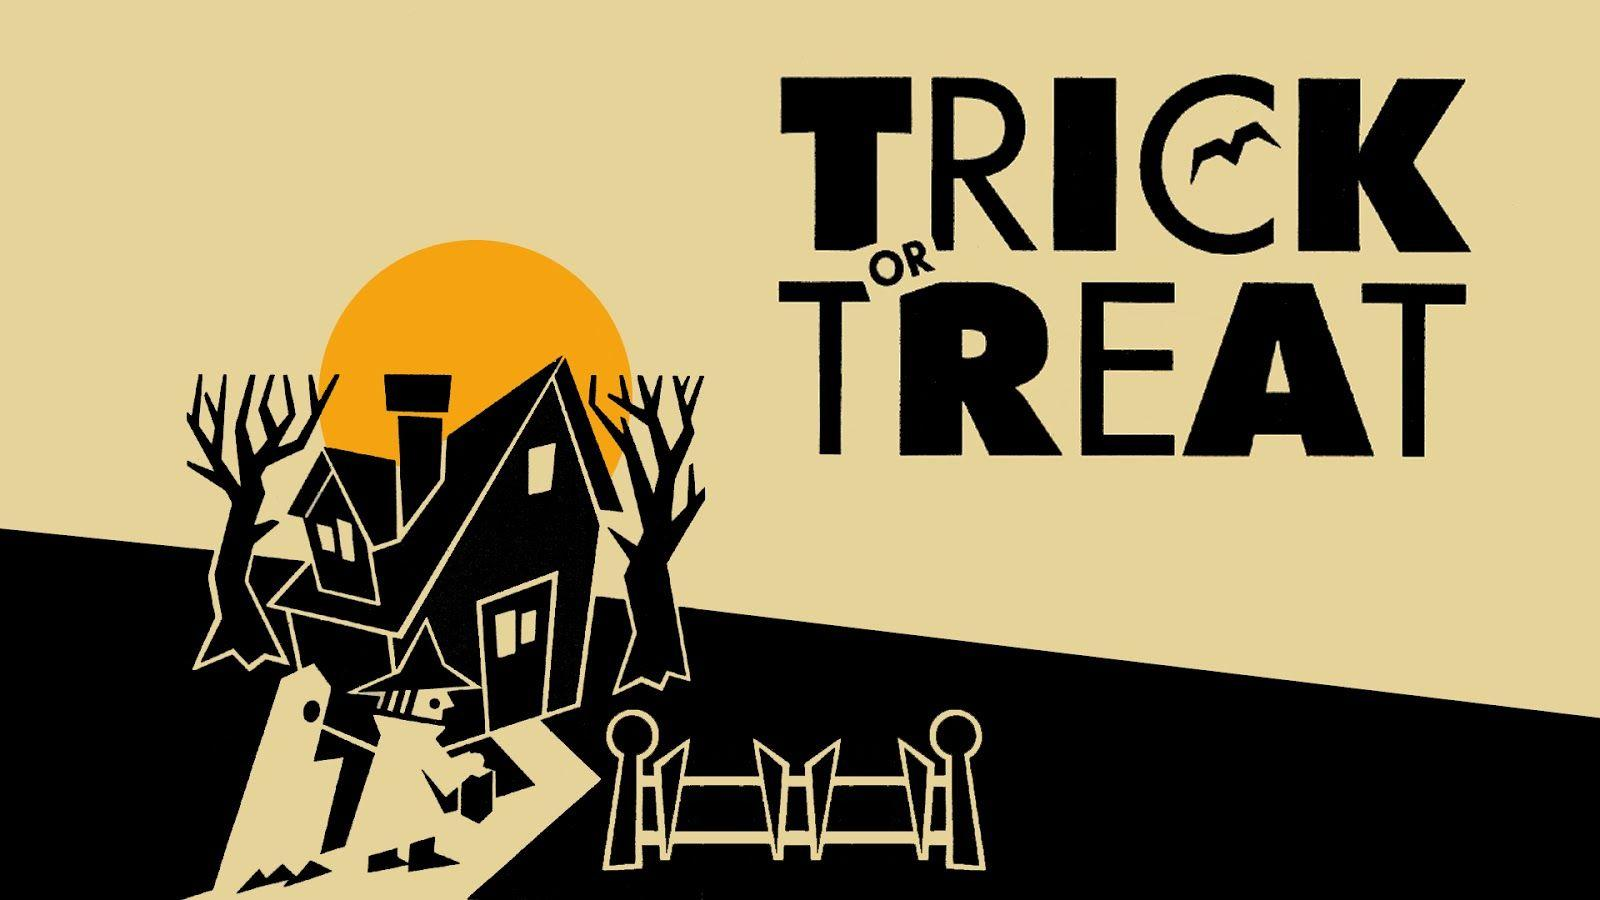 Neato Coolville: HALLOWEEN WALLPAPER: TRICK OR TREAT